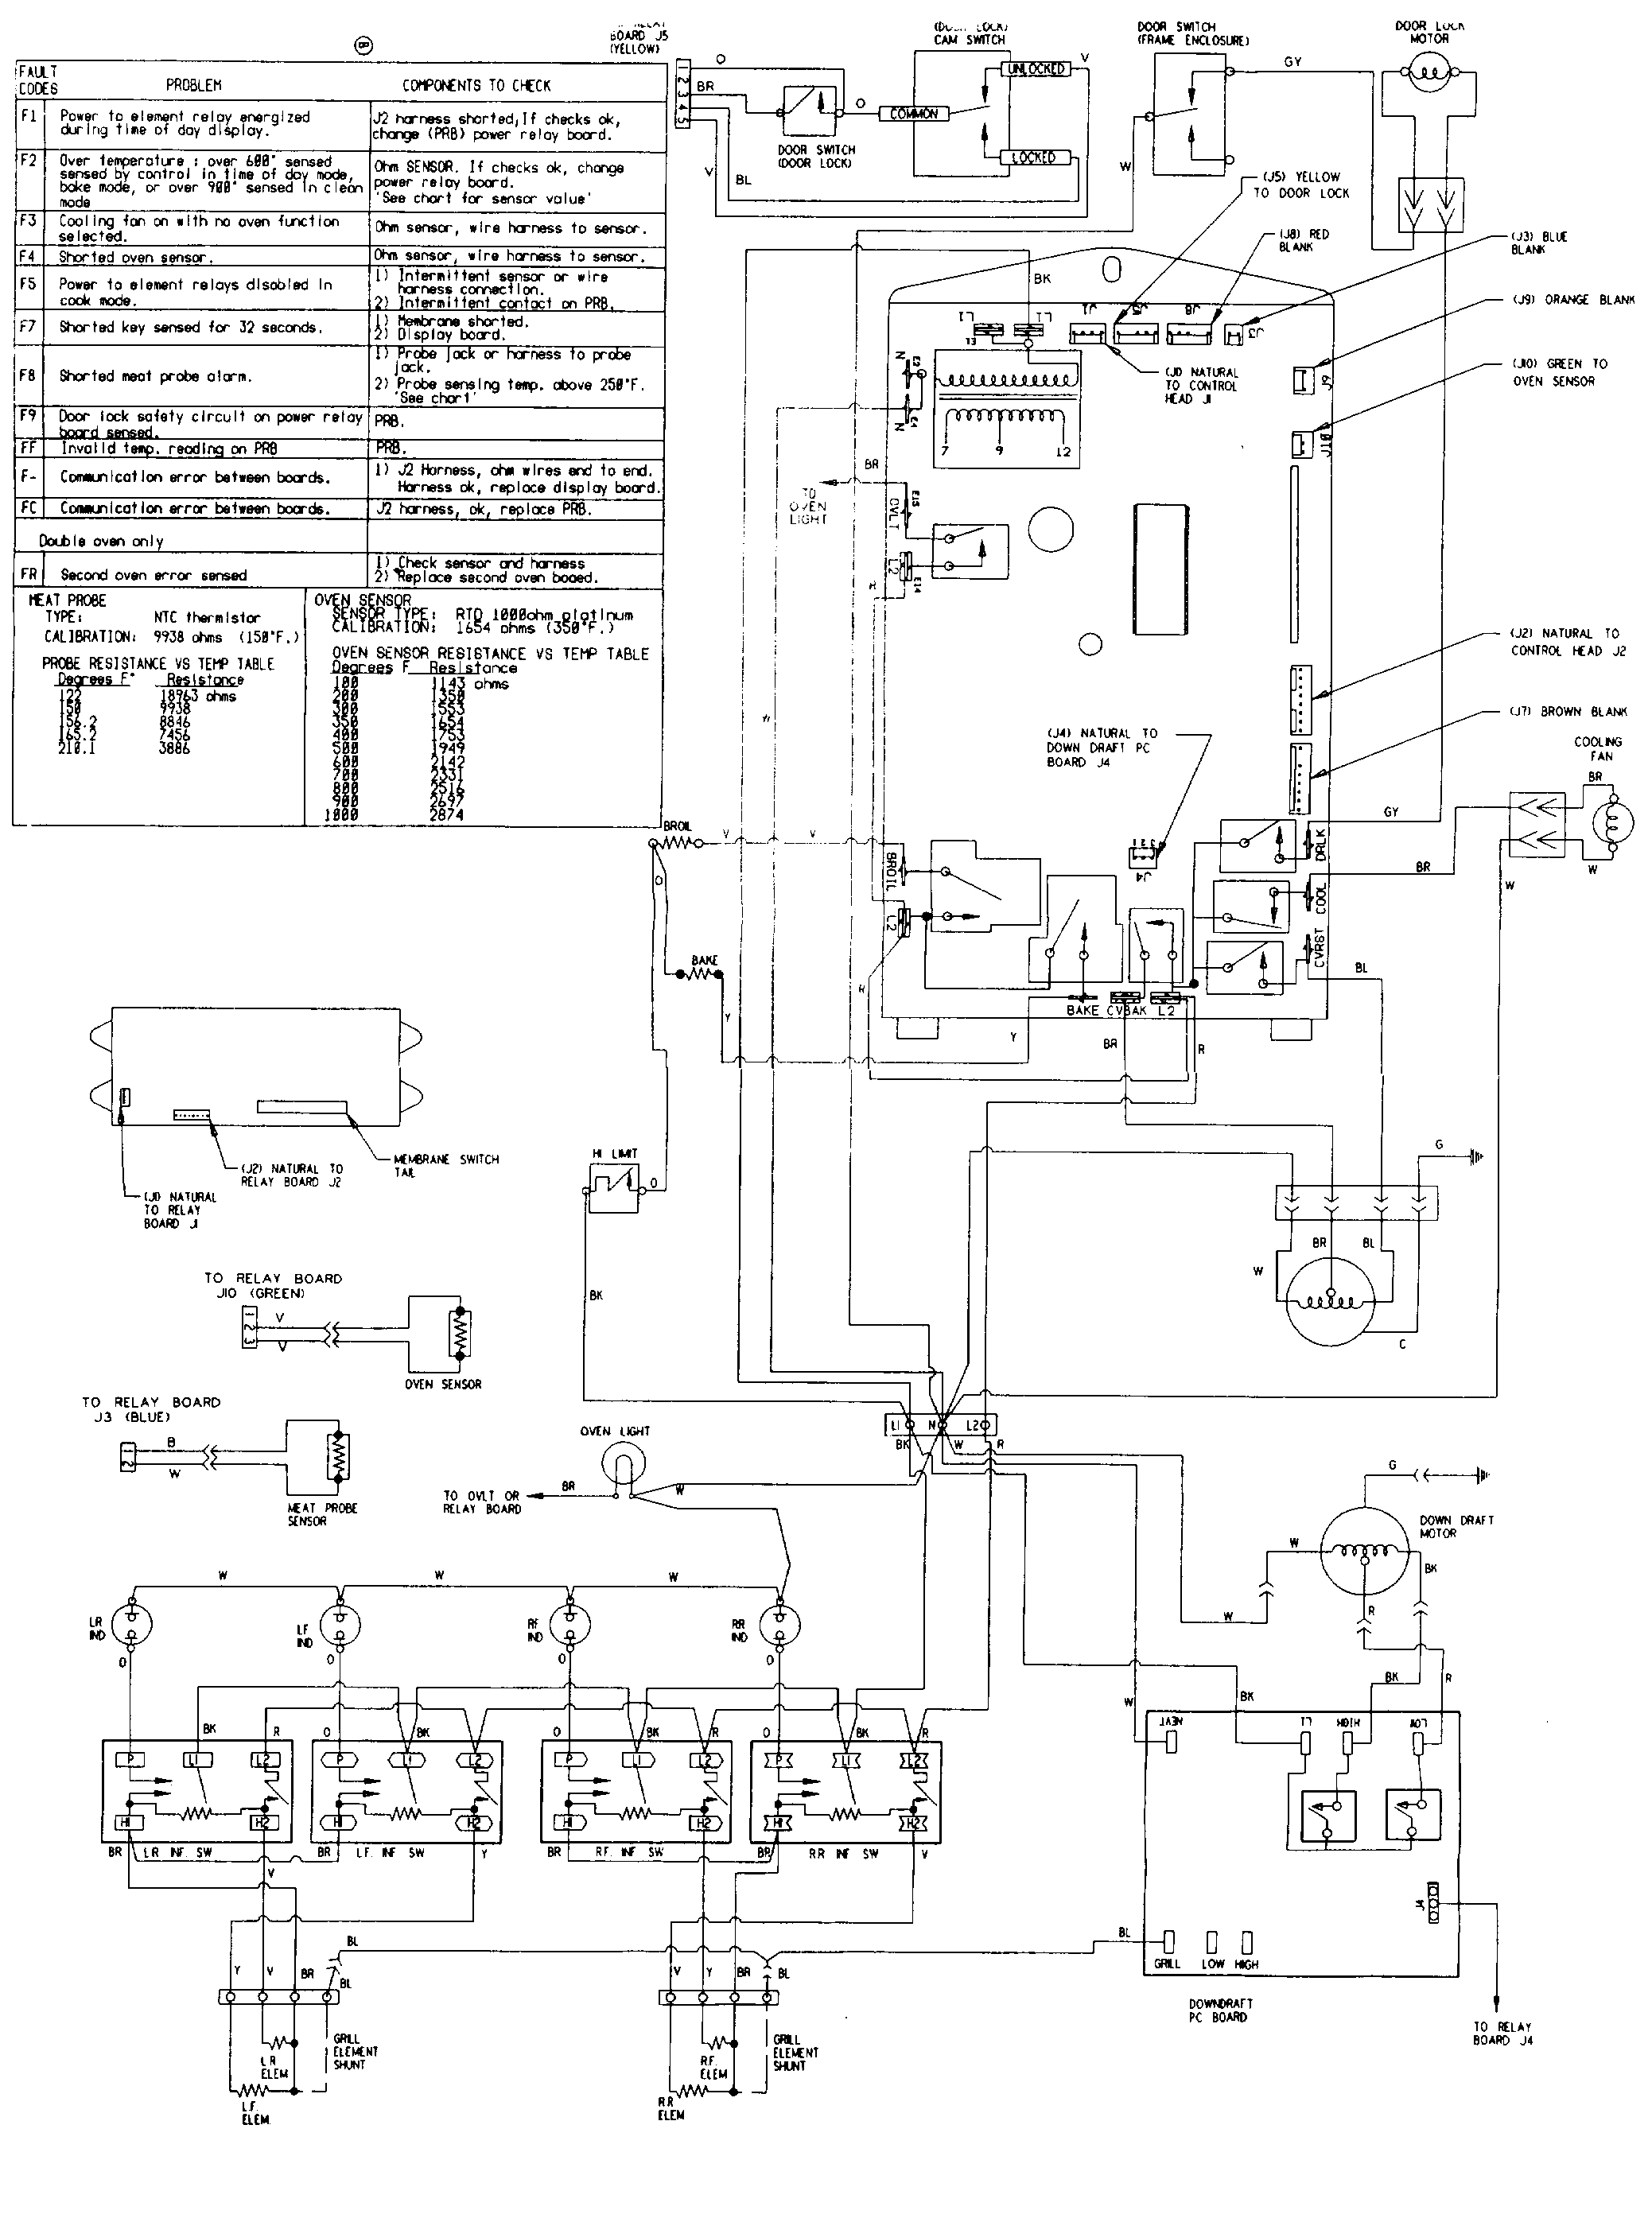 Jenn Air Refrigerator Wiring Diagram Auto Electrical Ford Maverick Wire Harness Related With